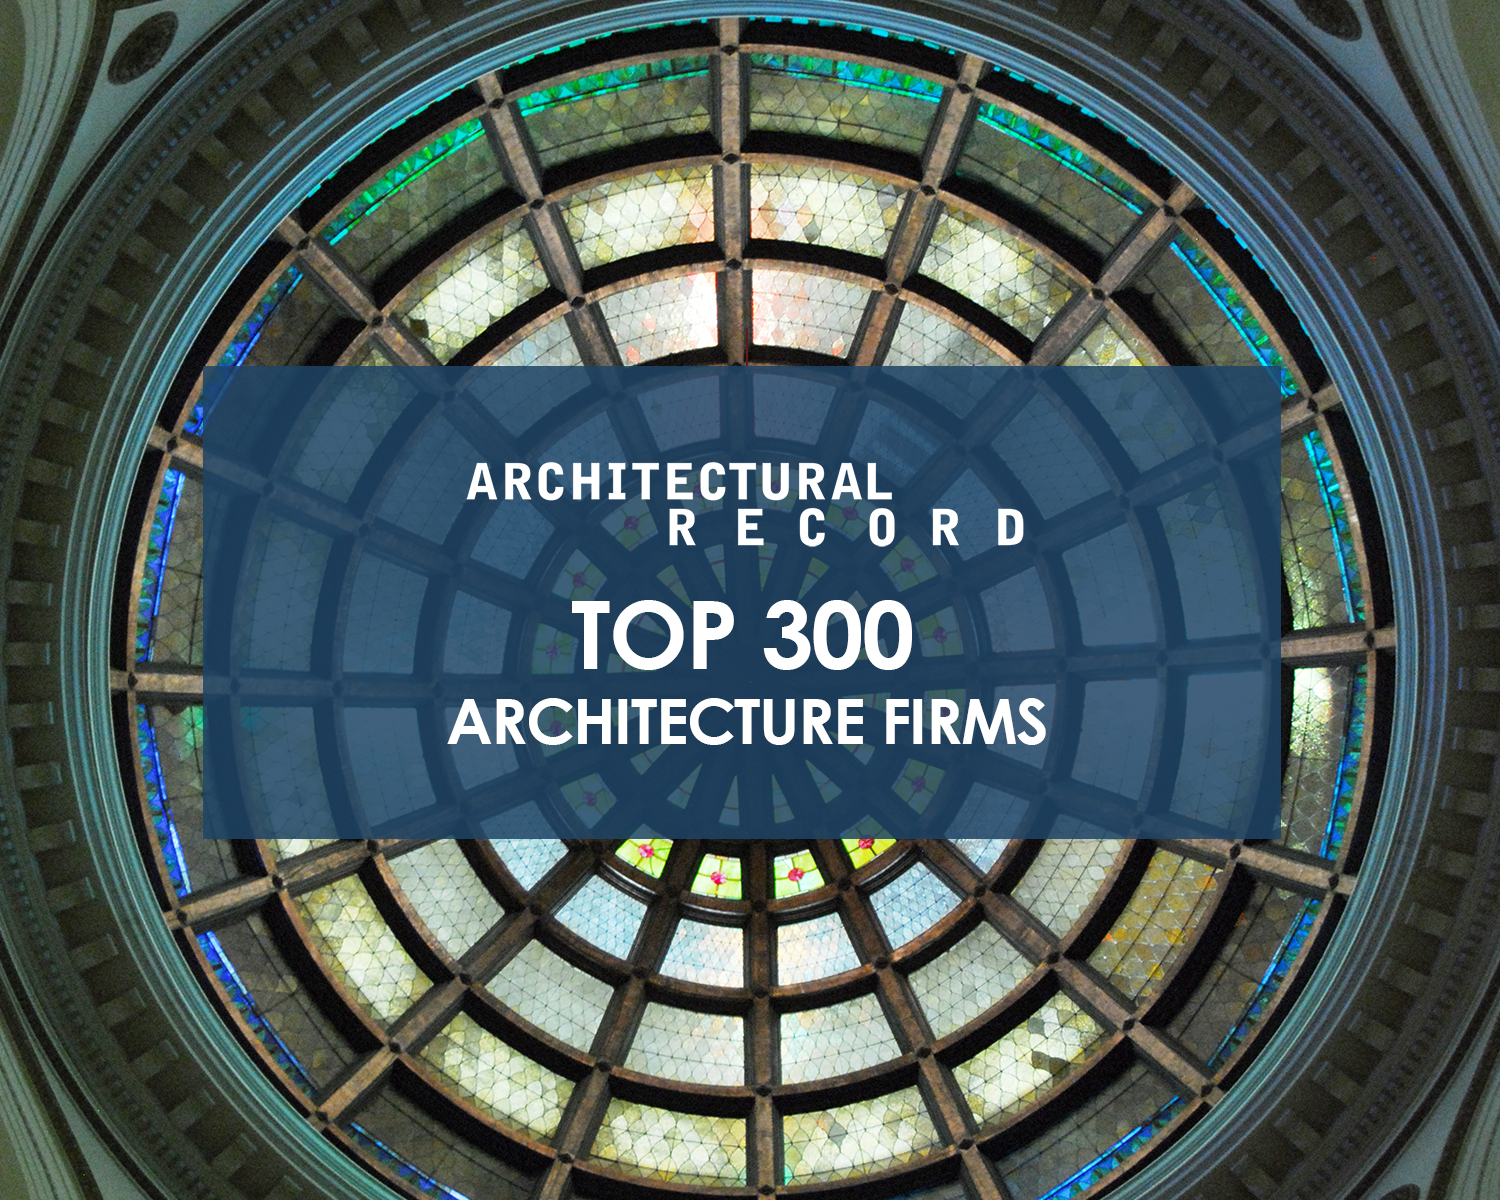 LAN Top Architecture Firm